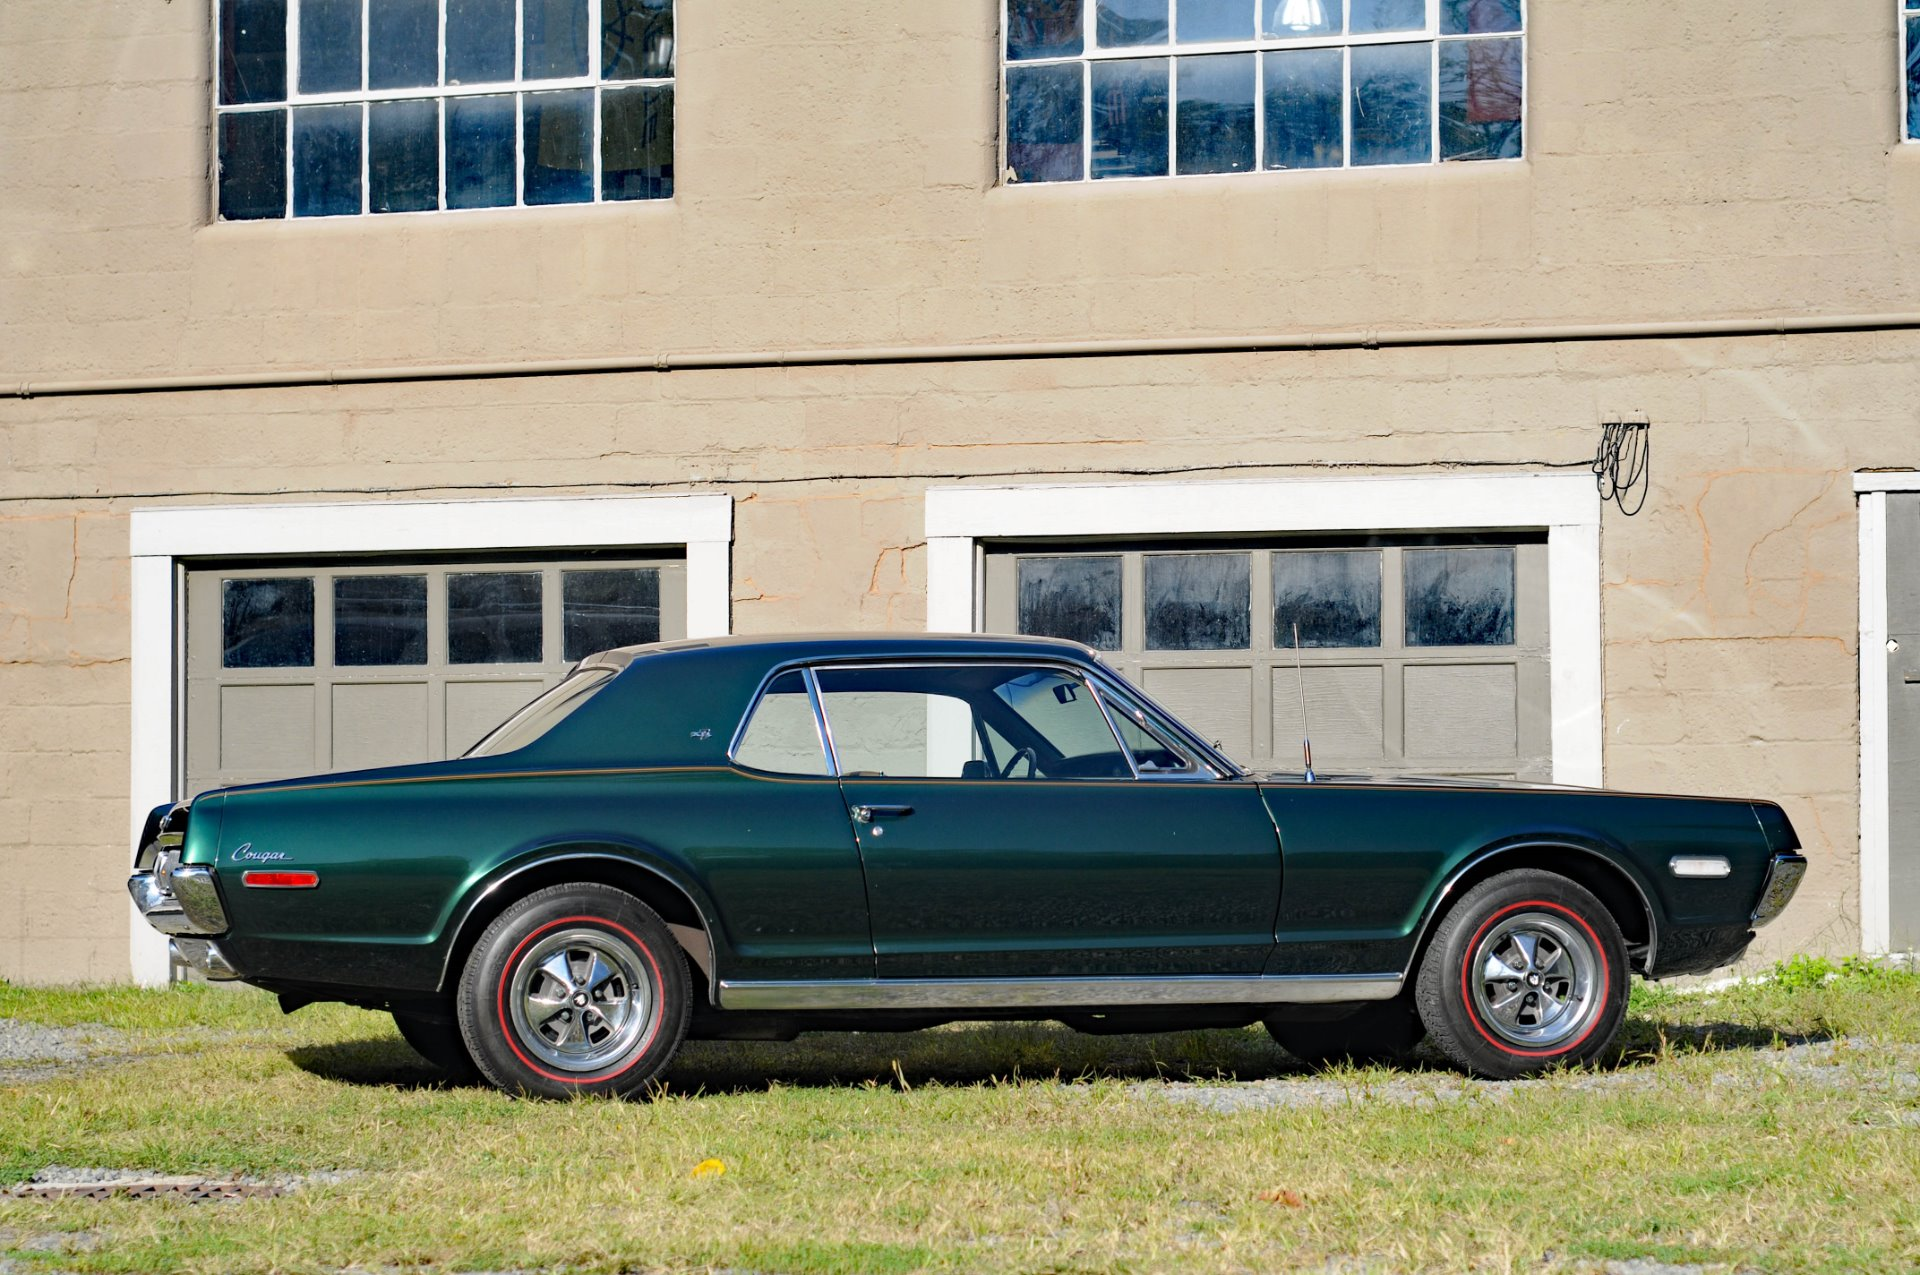 Used-1968-Mercury-Cougar-XR-7